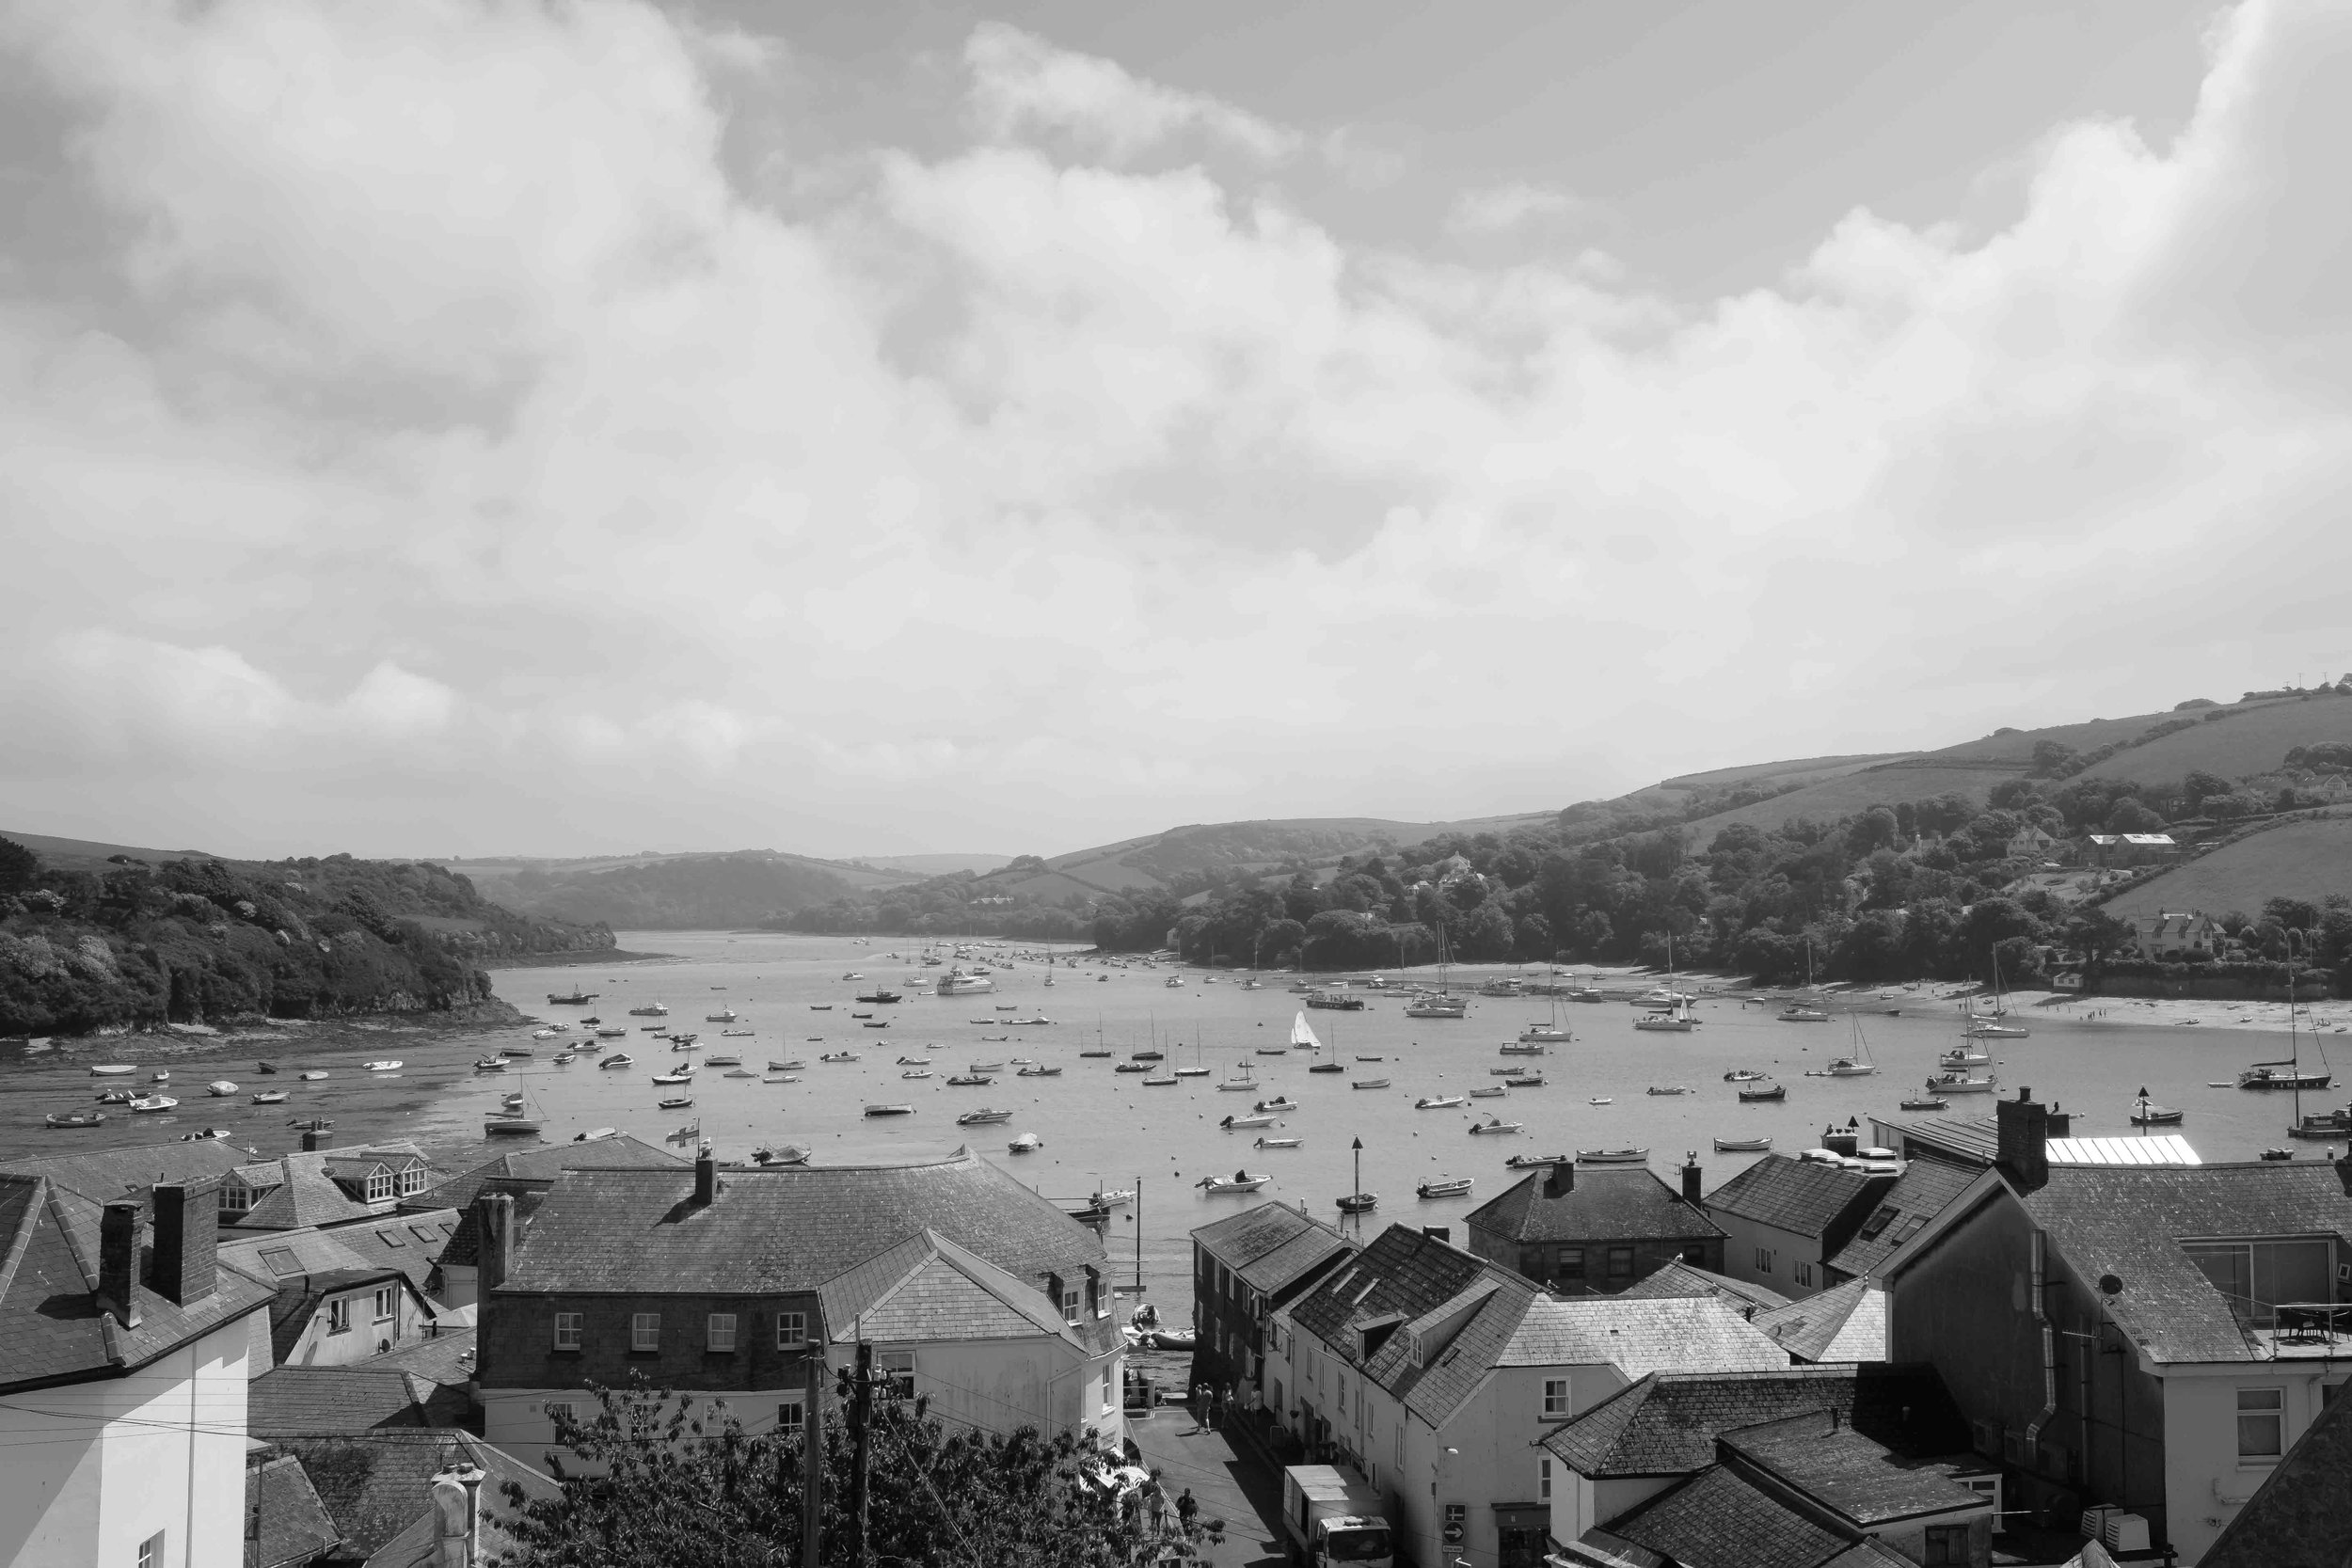 Salcombe, May 2018